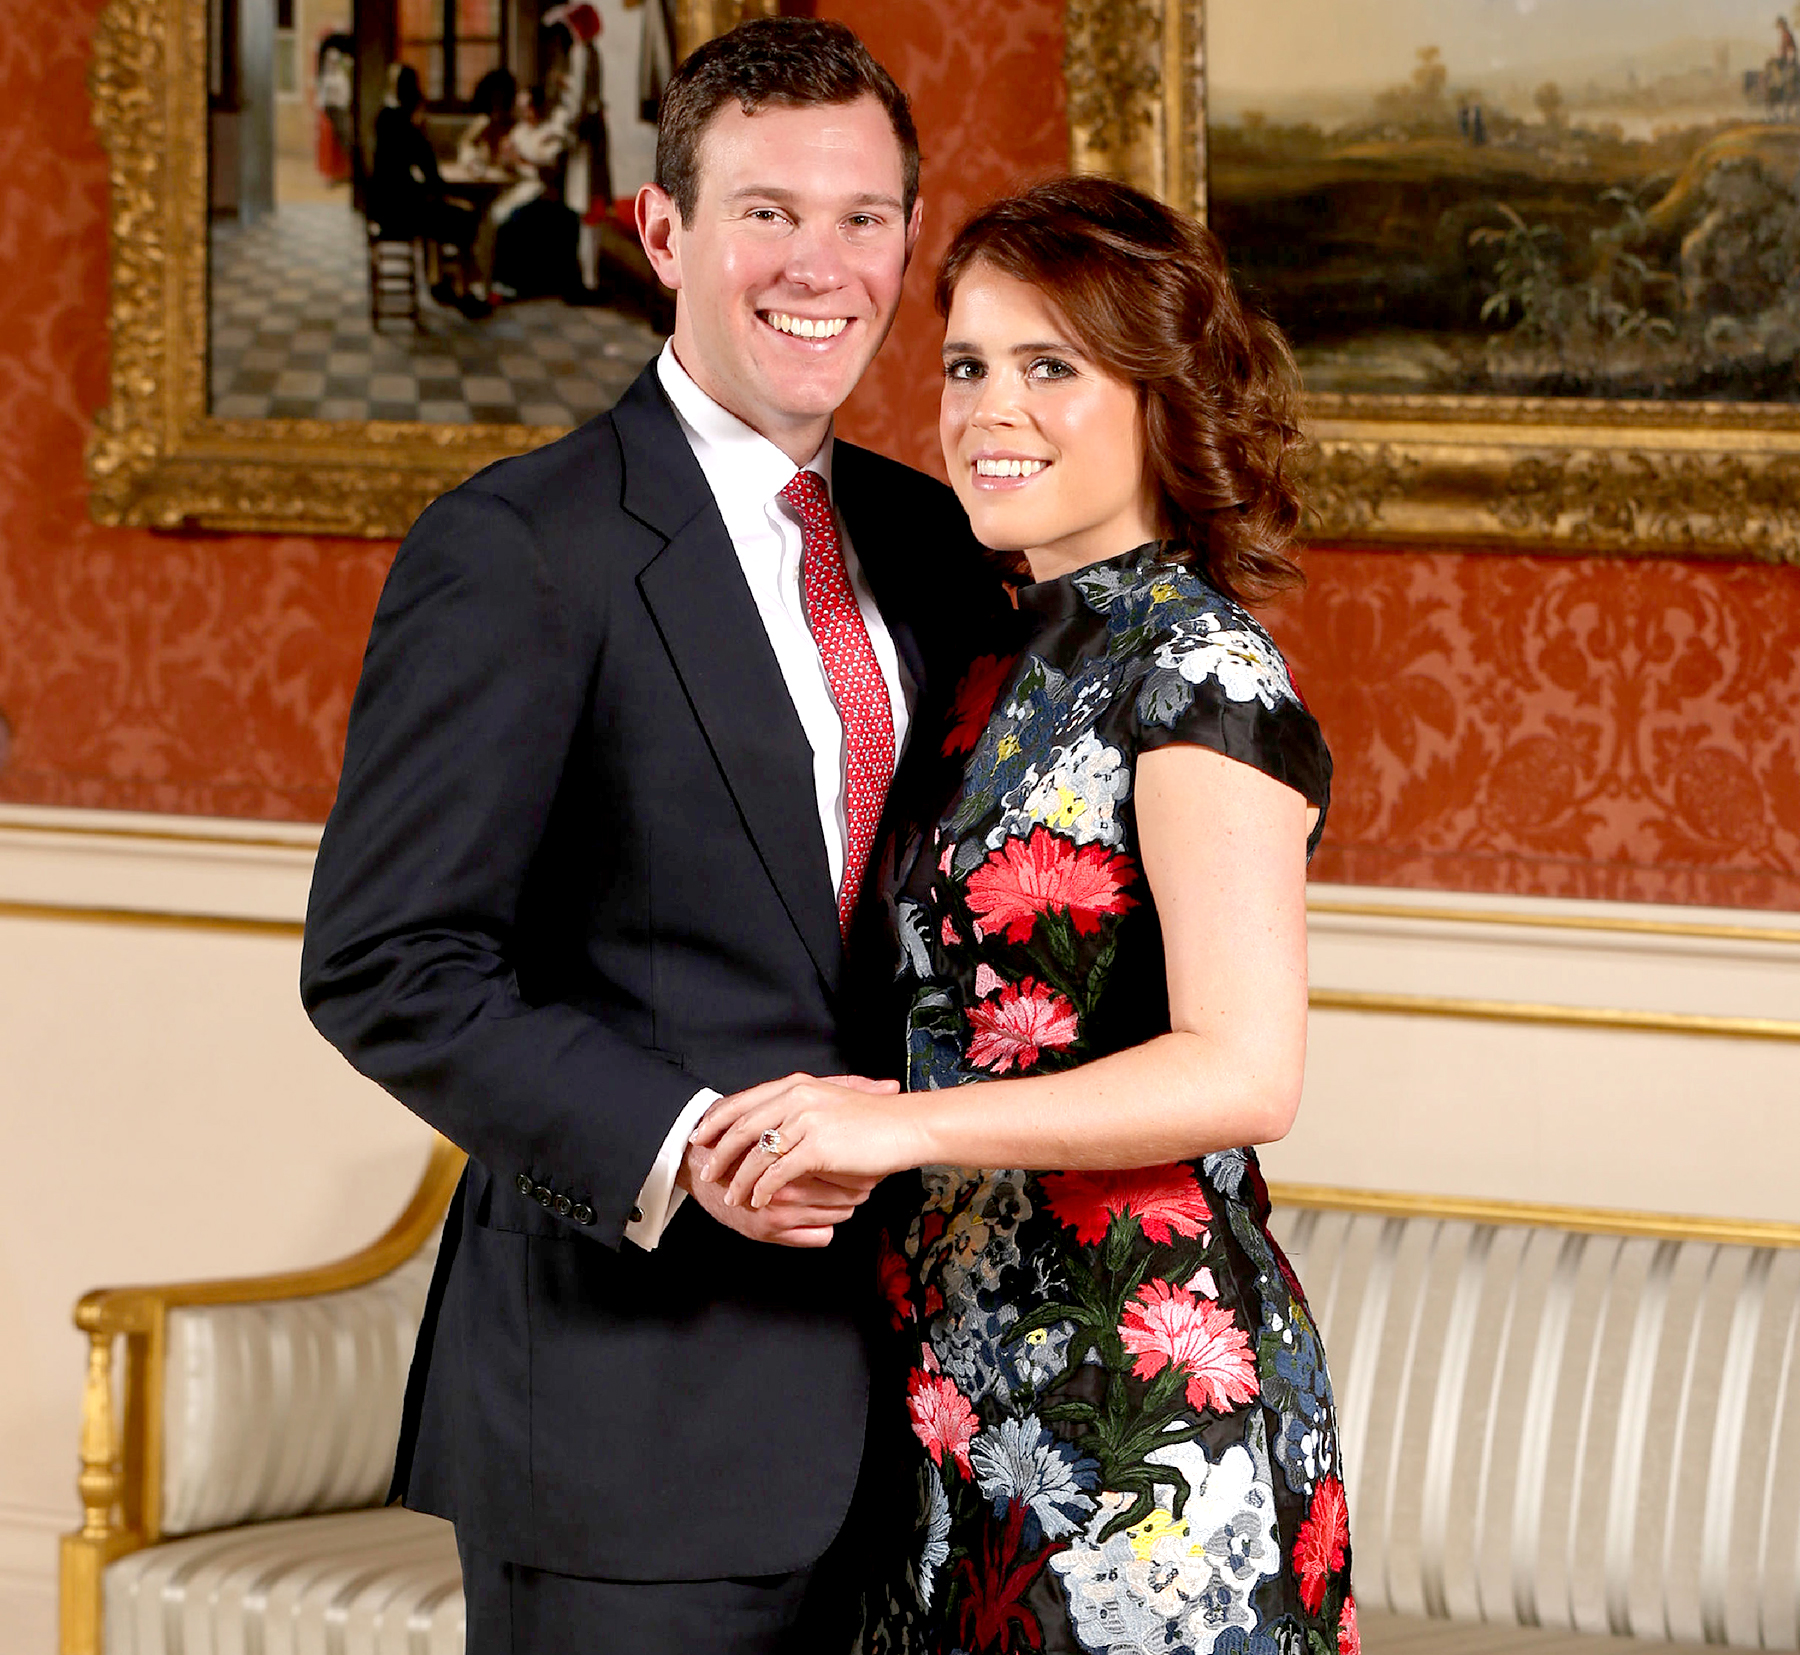 Princess Eugenie's Wedding Date Has Been Set